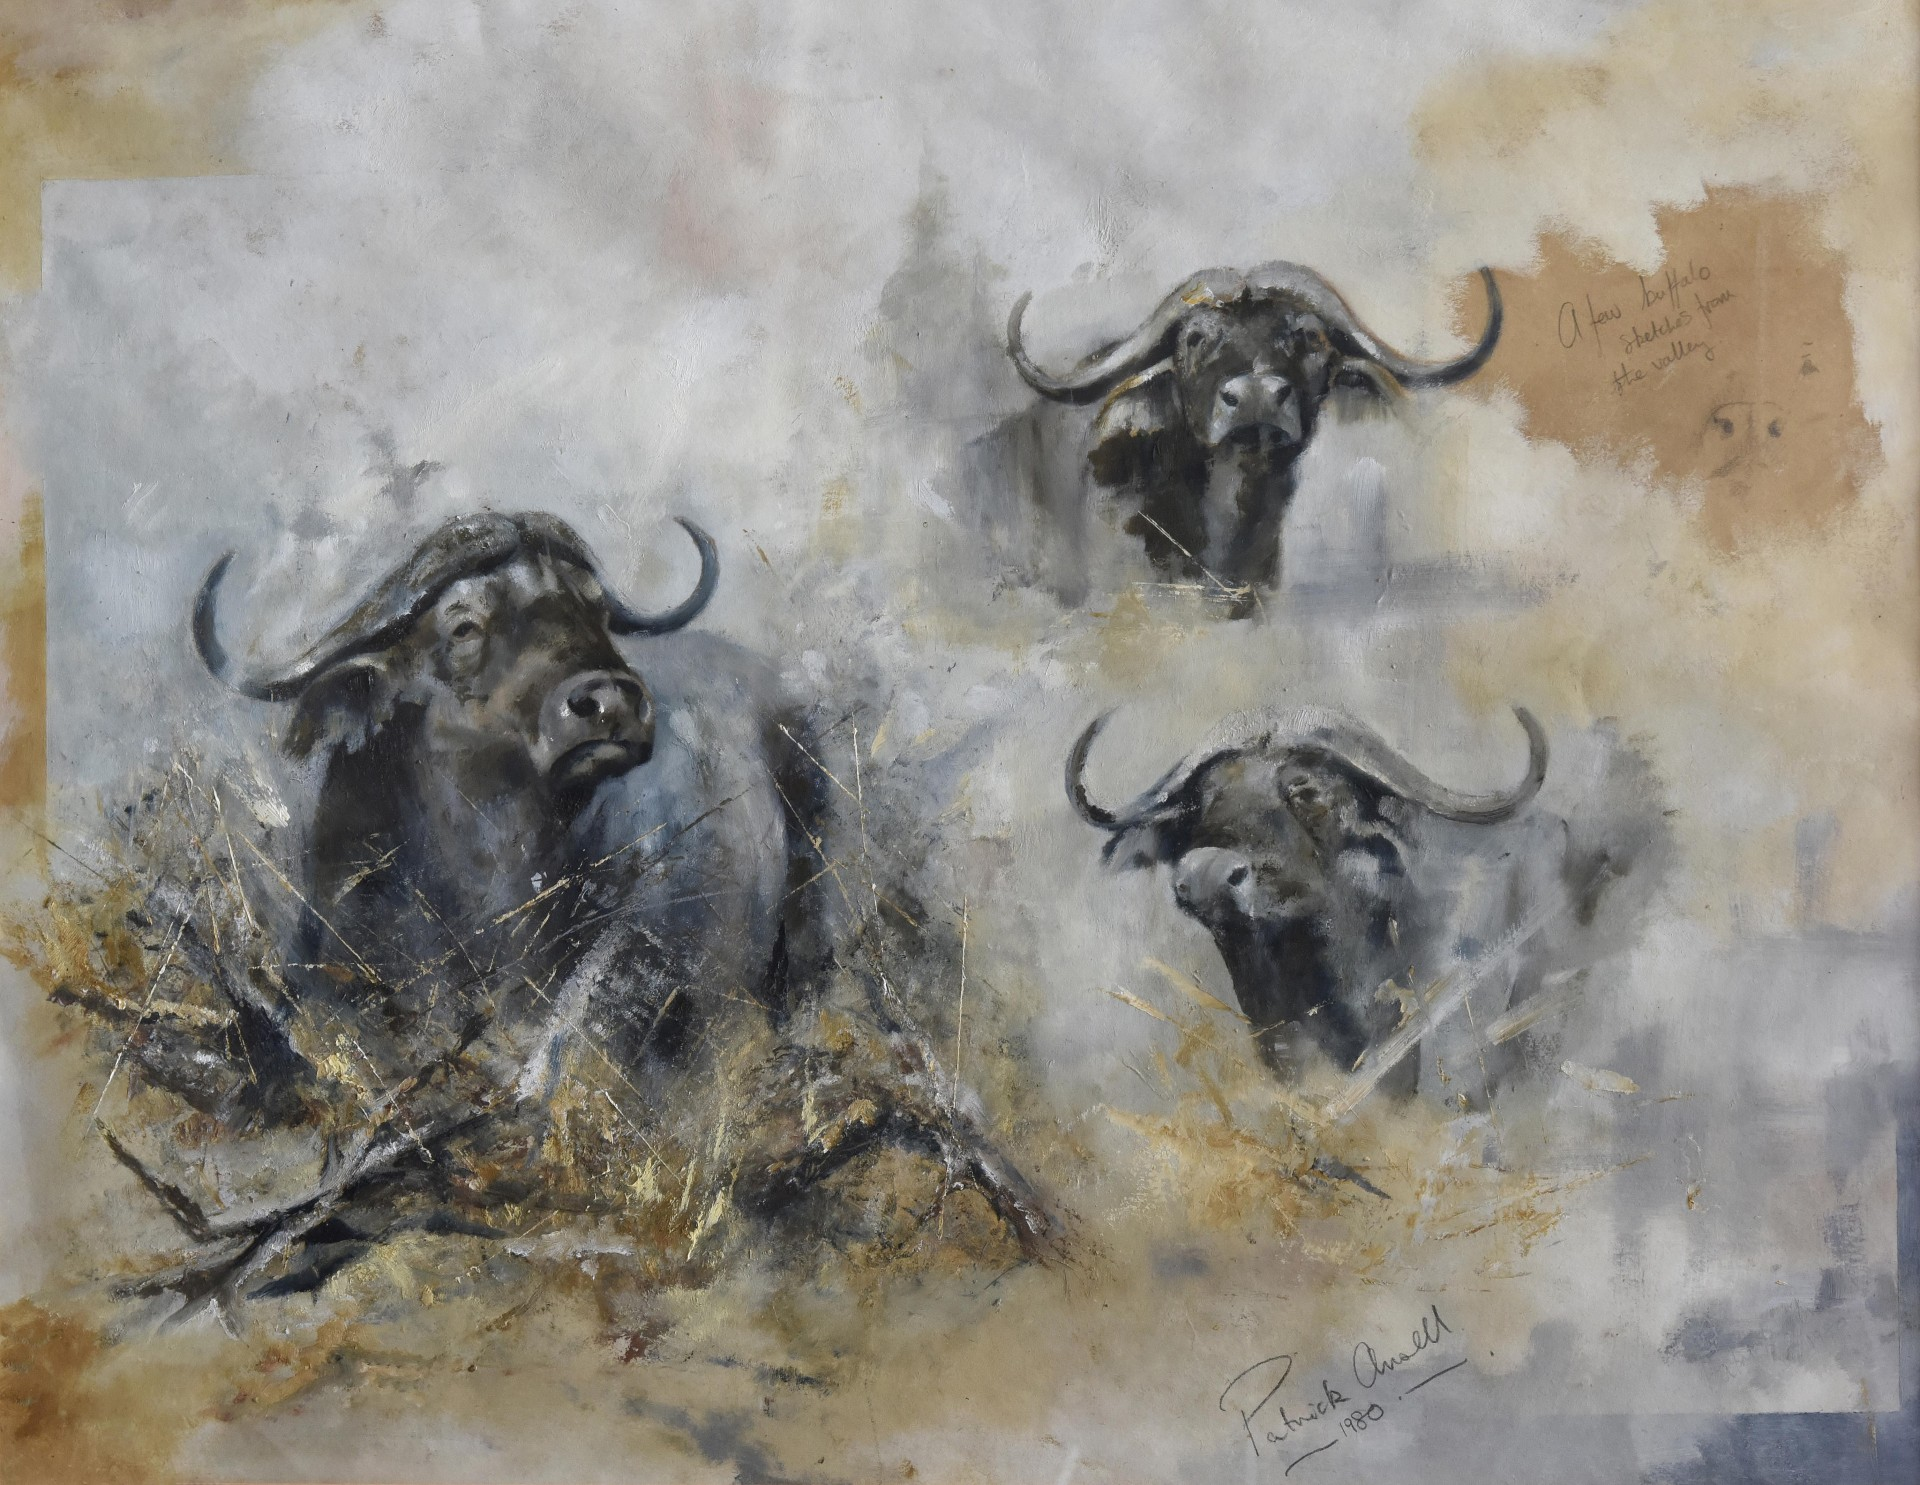 A Few Buffalo Sketches From The Valley